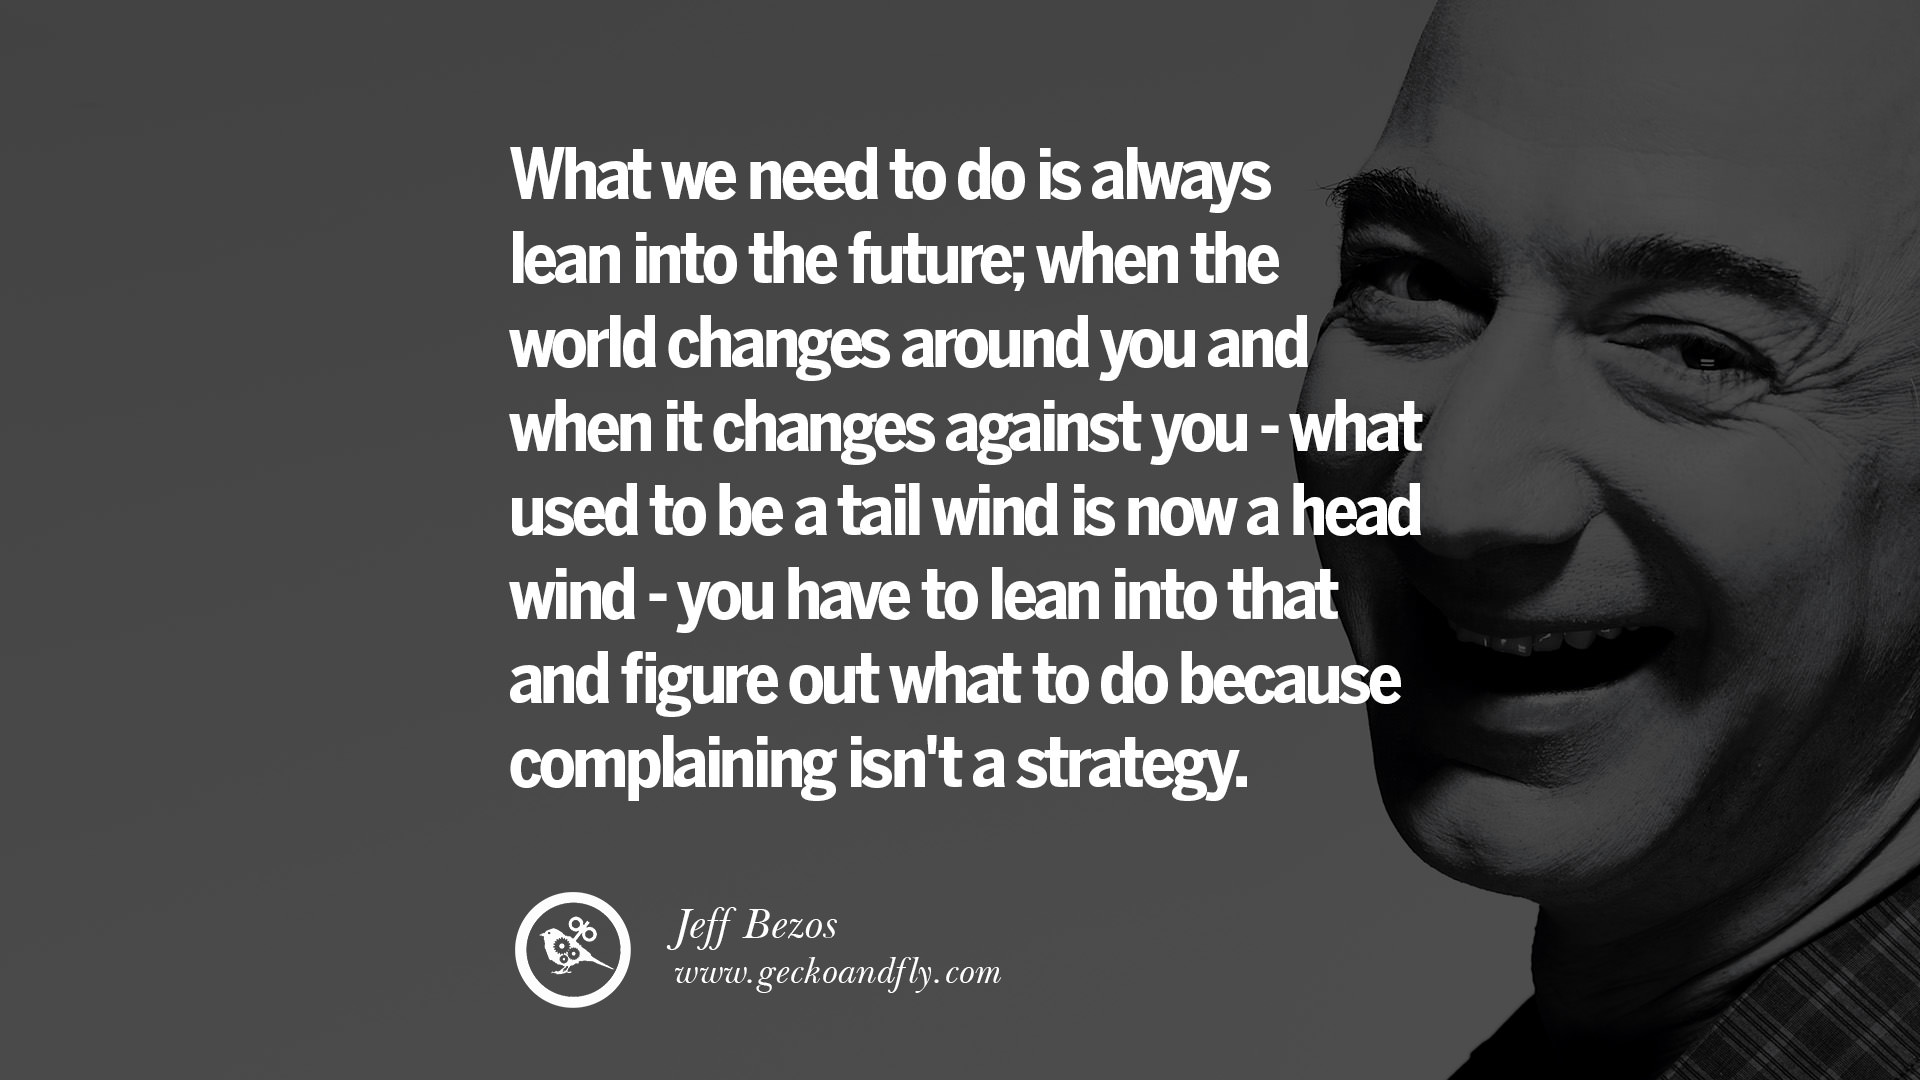 20 Famous Jeff Bezos Quotes On Innovation Business Commerce And